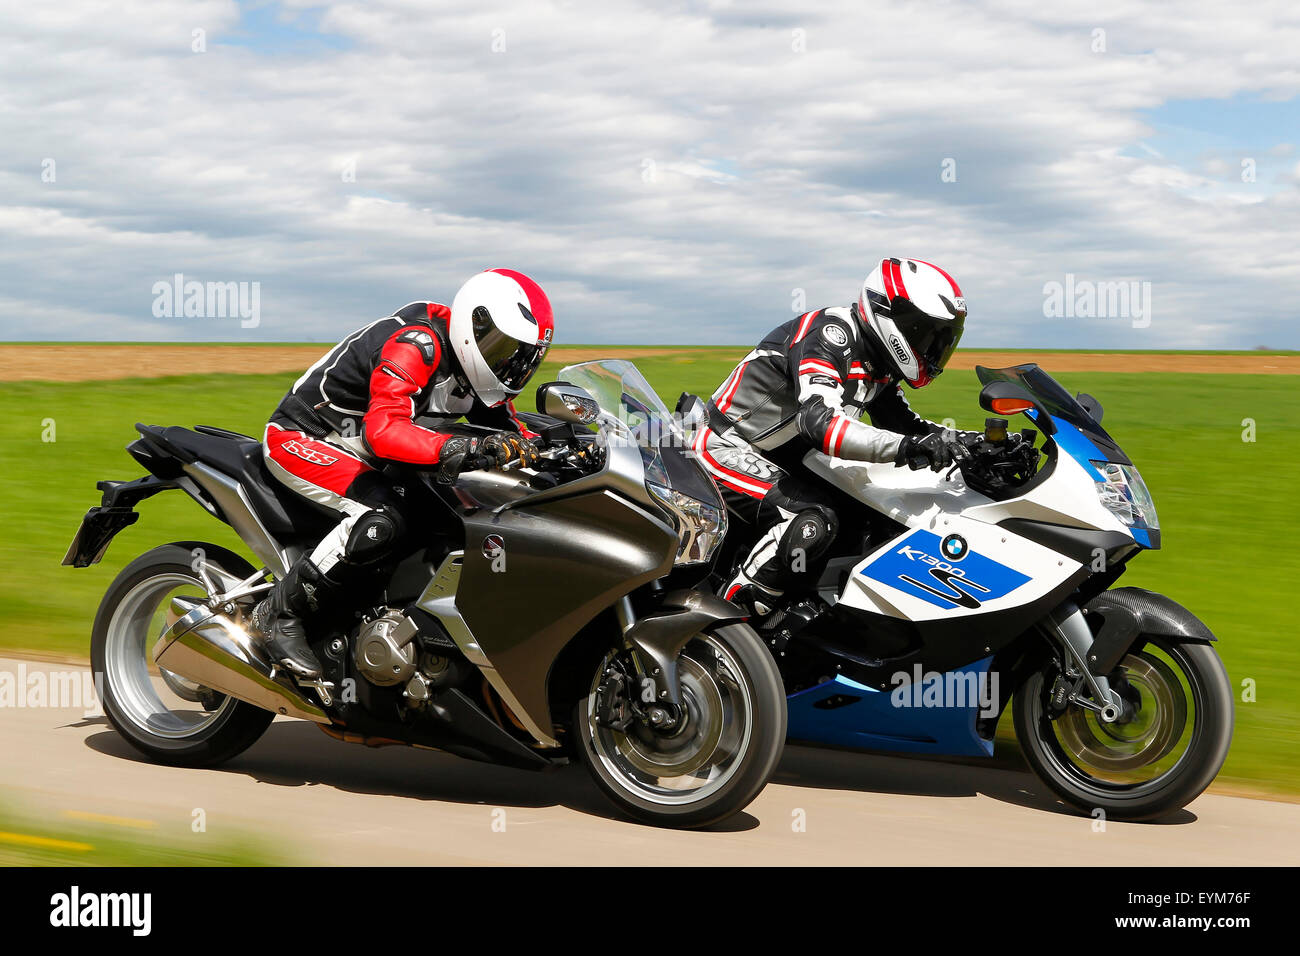 motorcycles bmw k 1300 s hp and honda vfr 1200 f dct year of stock photo 85881895 alamy. Black Bedroom Furniture Sets. Home Design Ideas